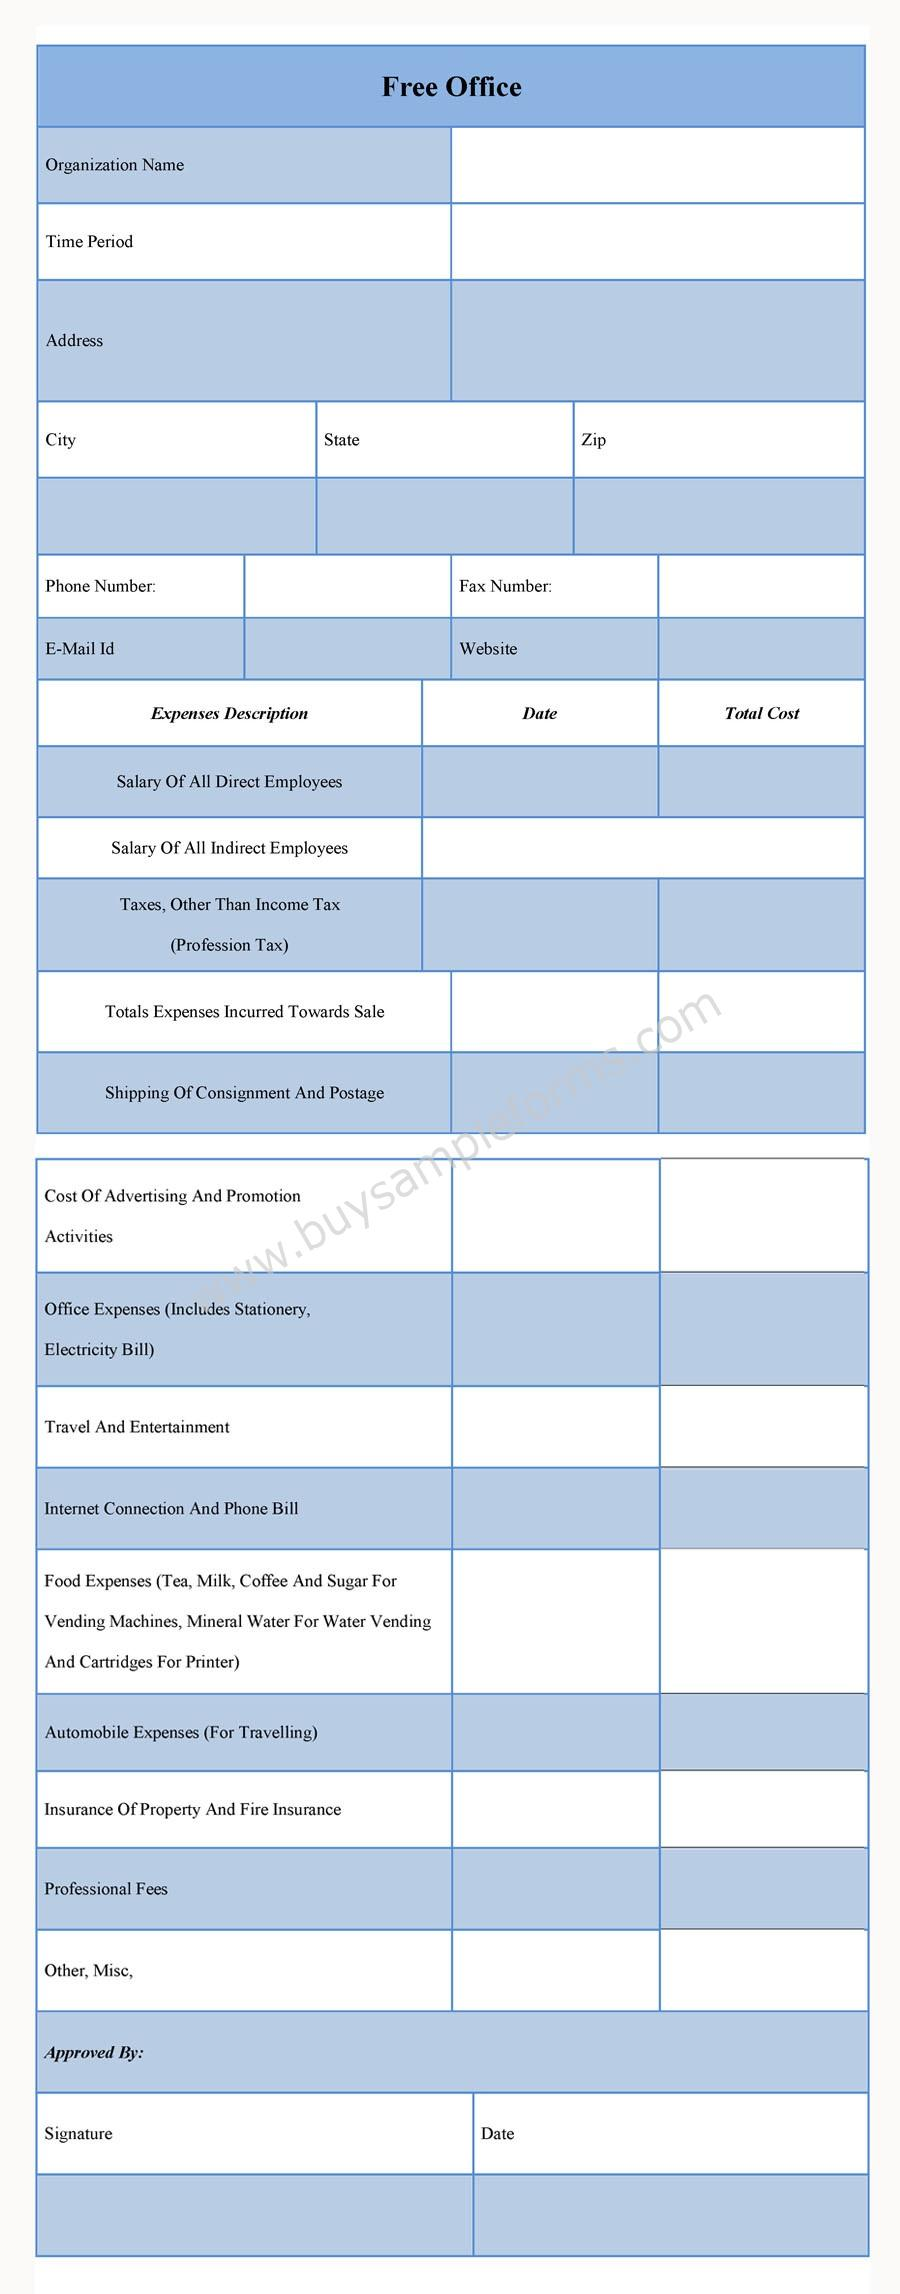 free office forms online